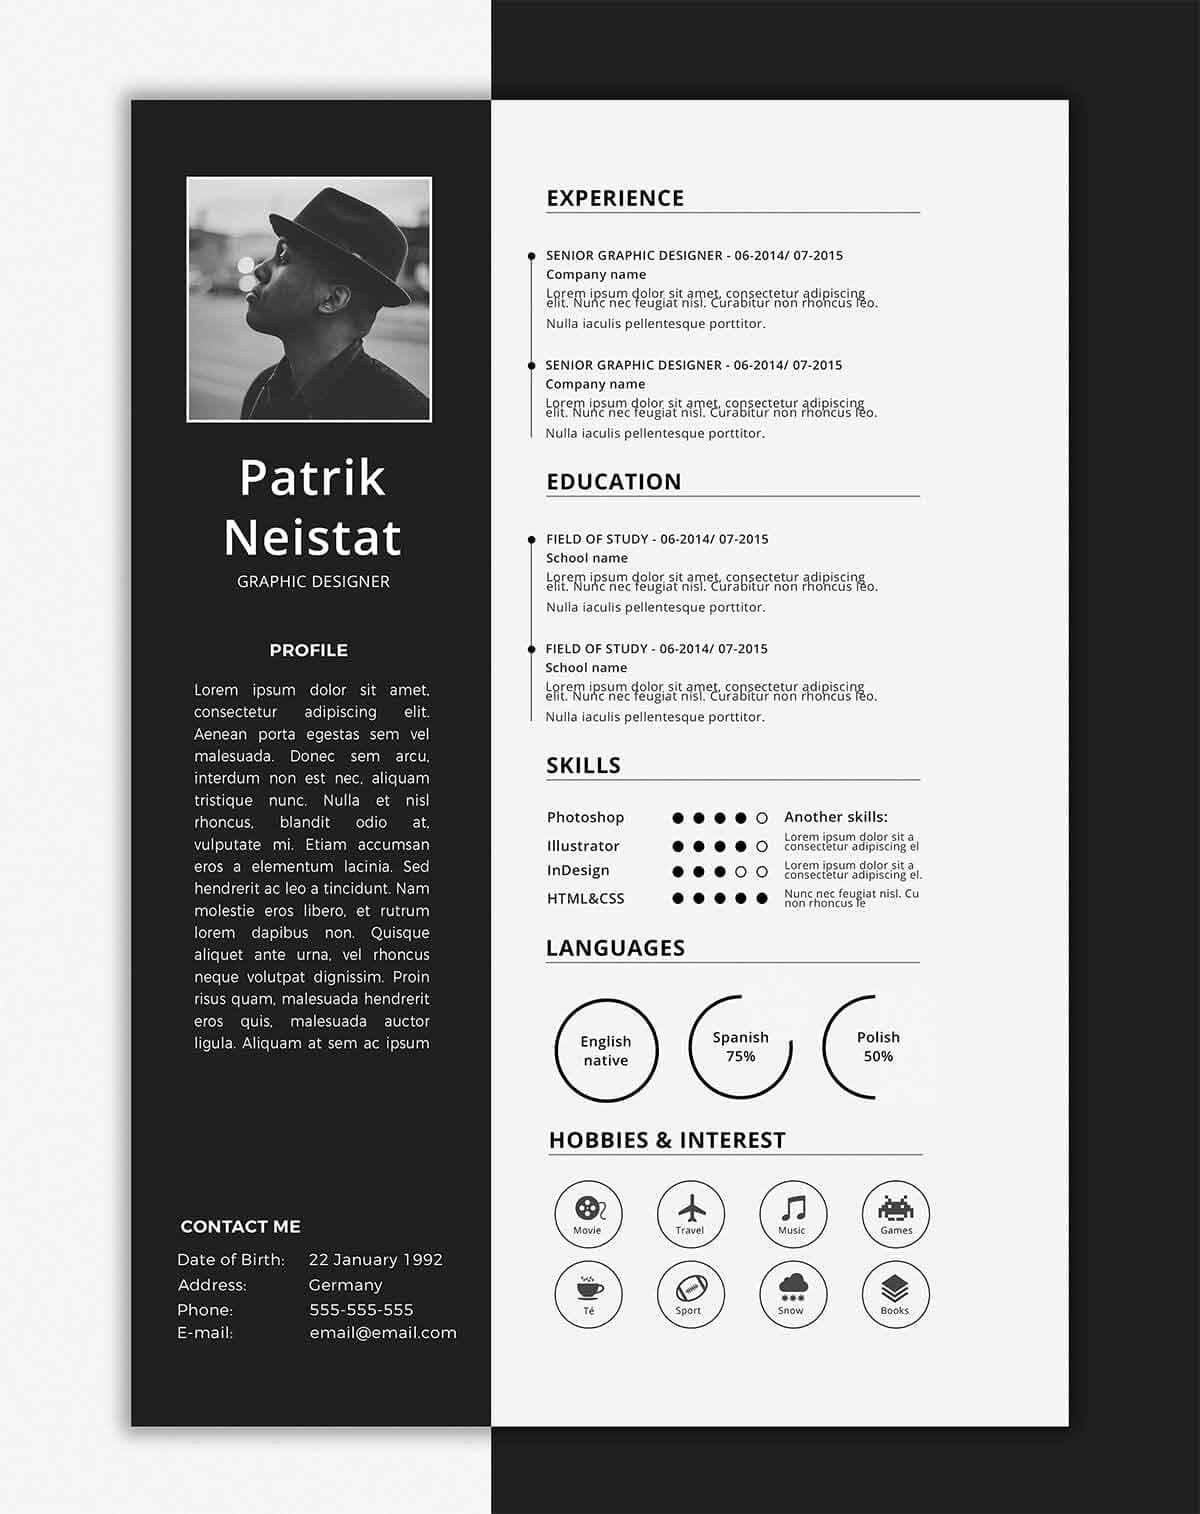 One Page Resume Template Free Awesome E Page Resume Templates 15 Examples to Download and Use now